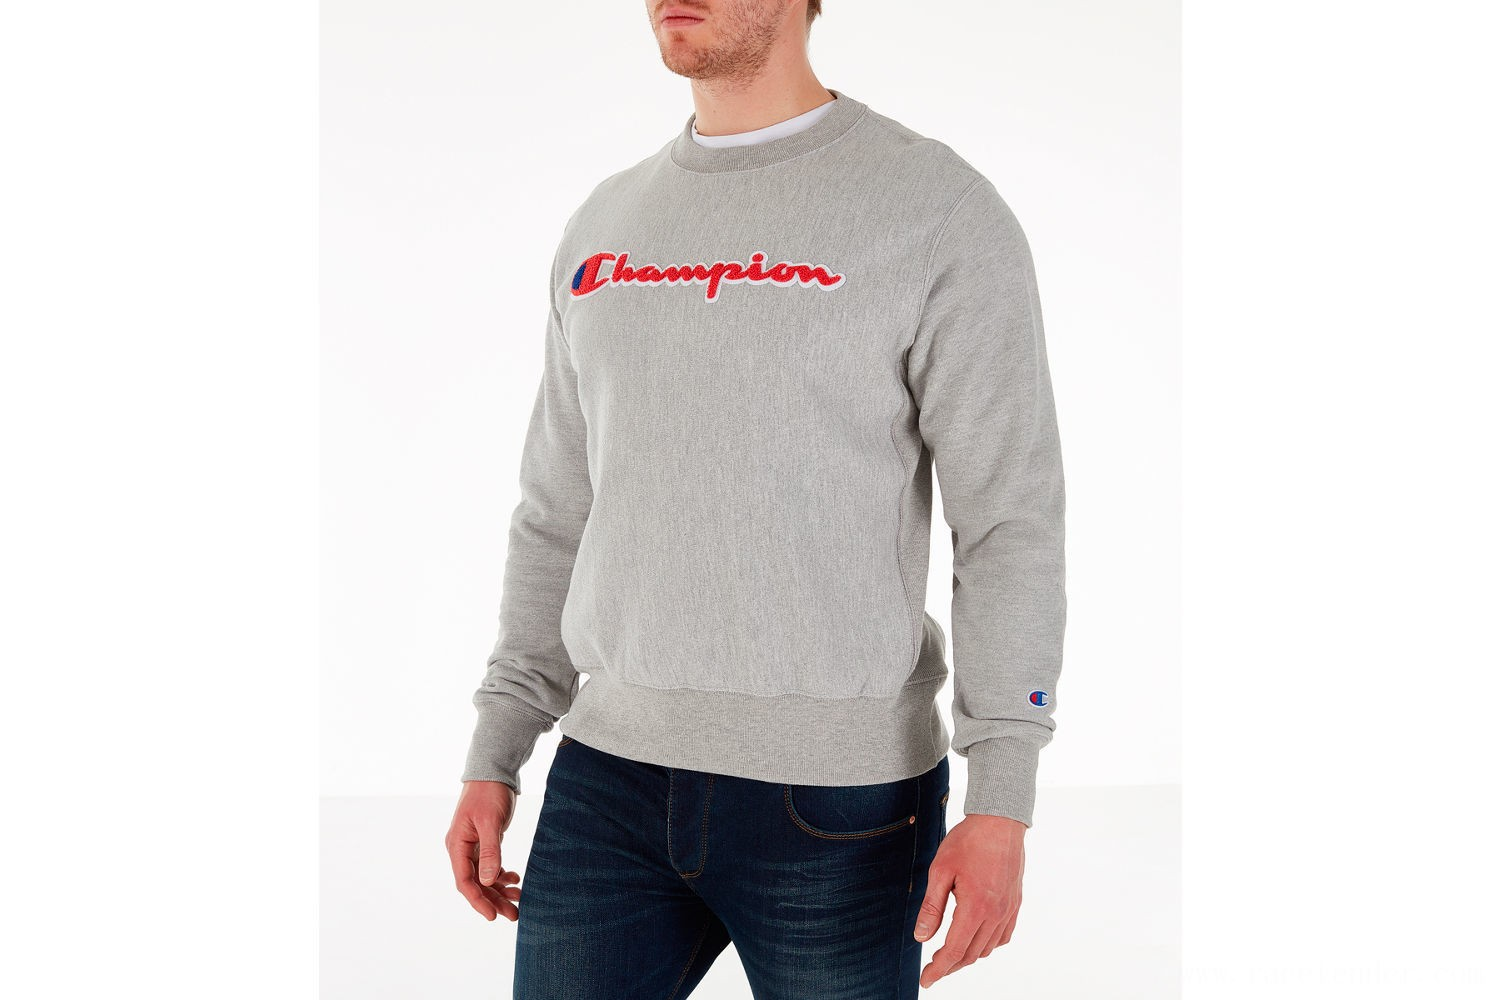 Champion Men's Reverse Weave Chenille Logo Crewneck Sweatshirt - Oxford Grey